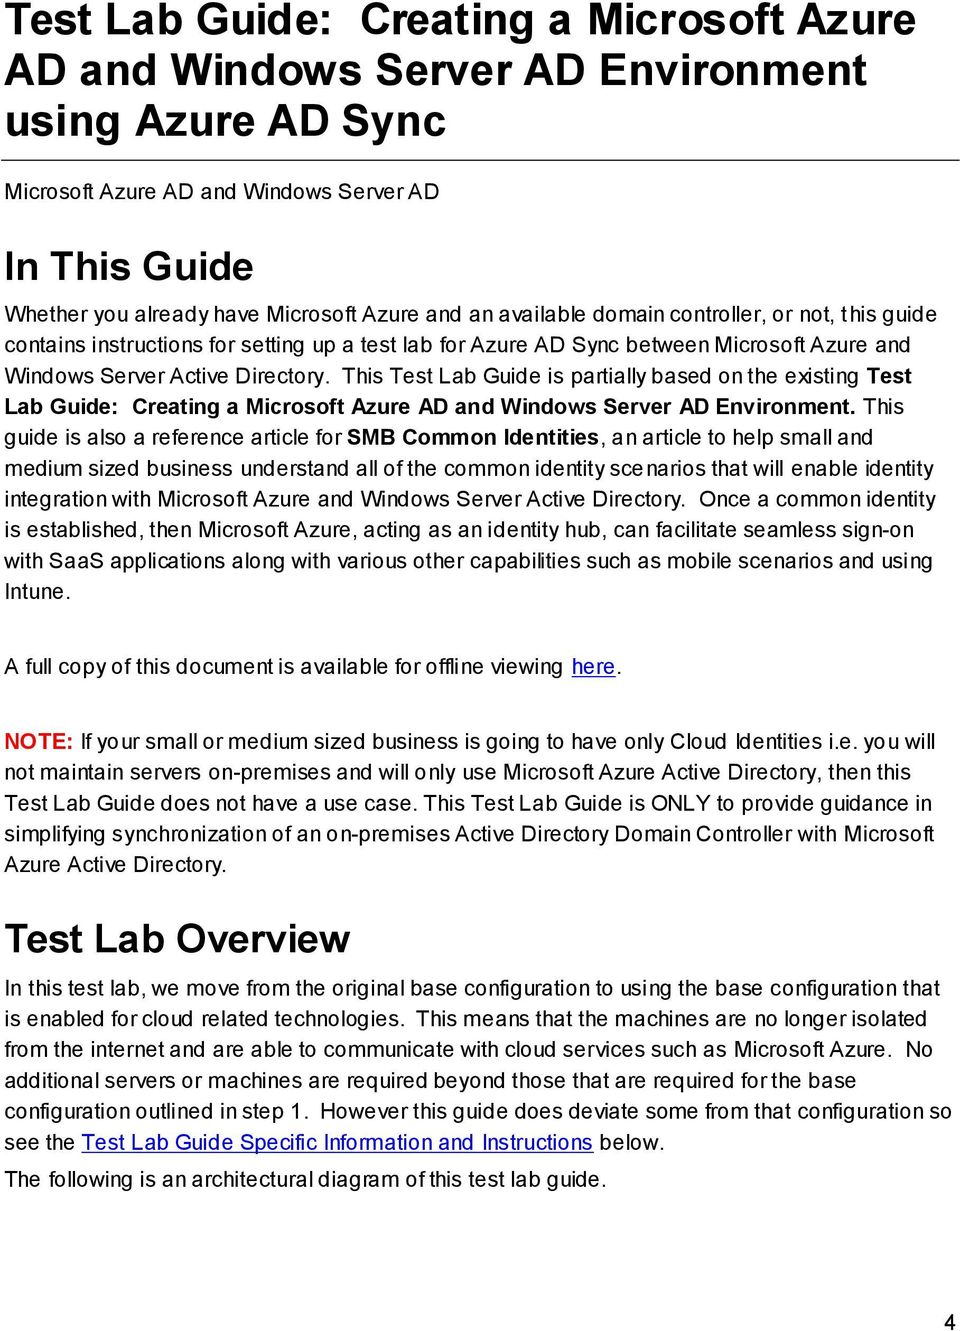 This Test Lab Guide is partially based on the existing Test Lab Guide: Creating a Microsoft Azure AD and Windows Server AD Environment.